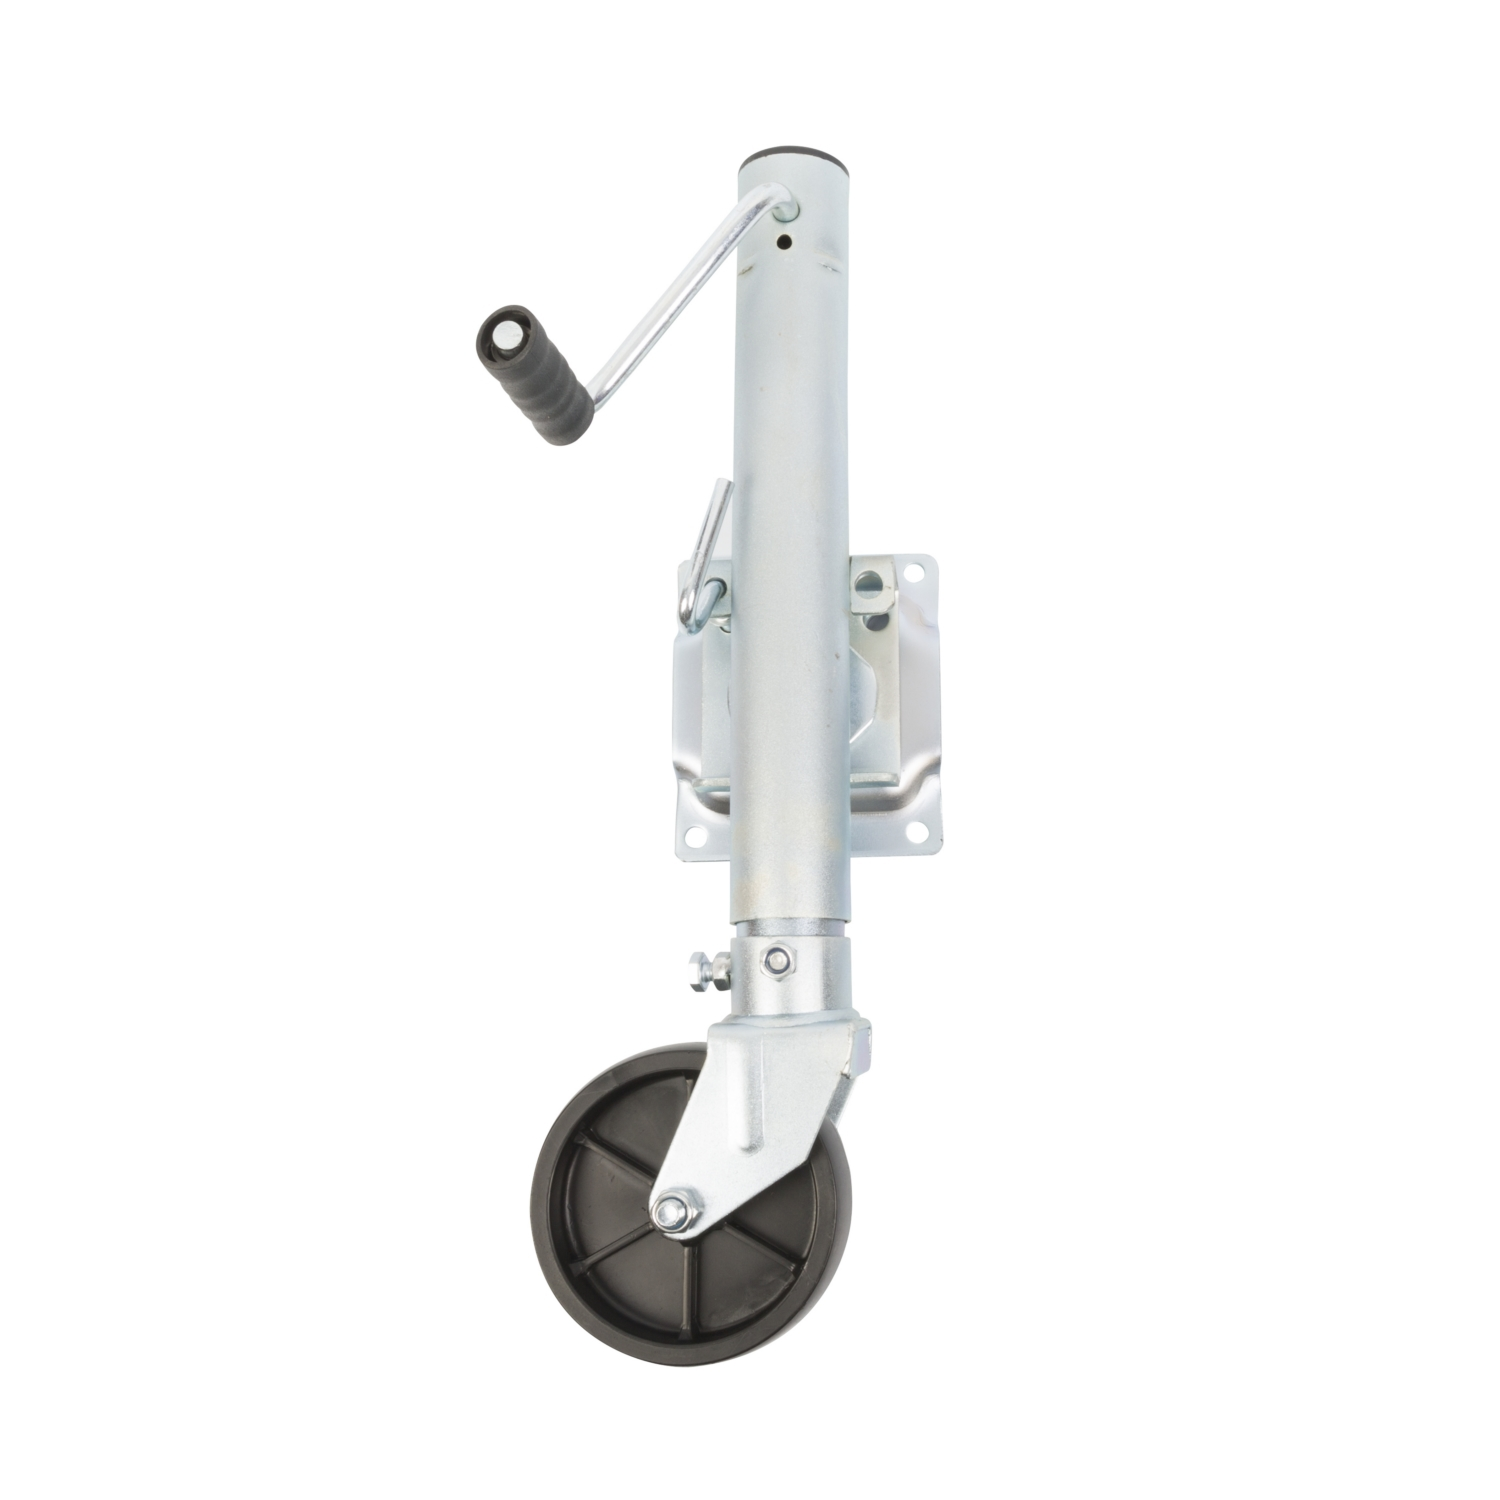 Click here to buy Kimpex Trailer Jack, 1500 lbs 1500 lbs Gray #745905 by Kimpex.